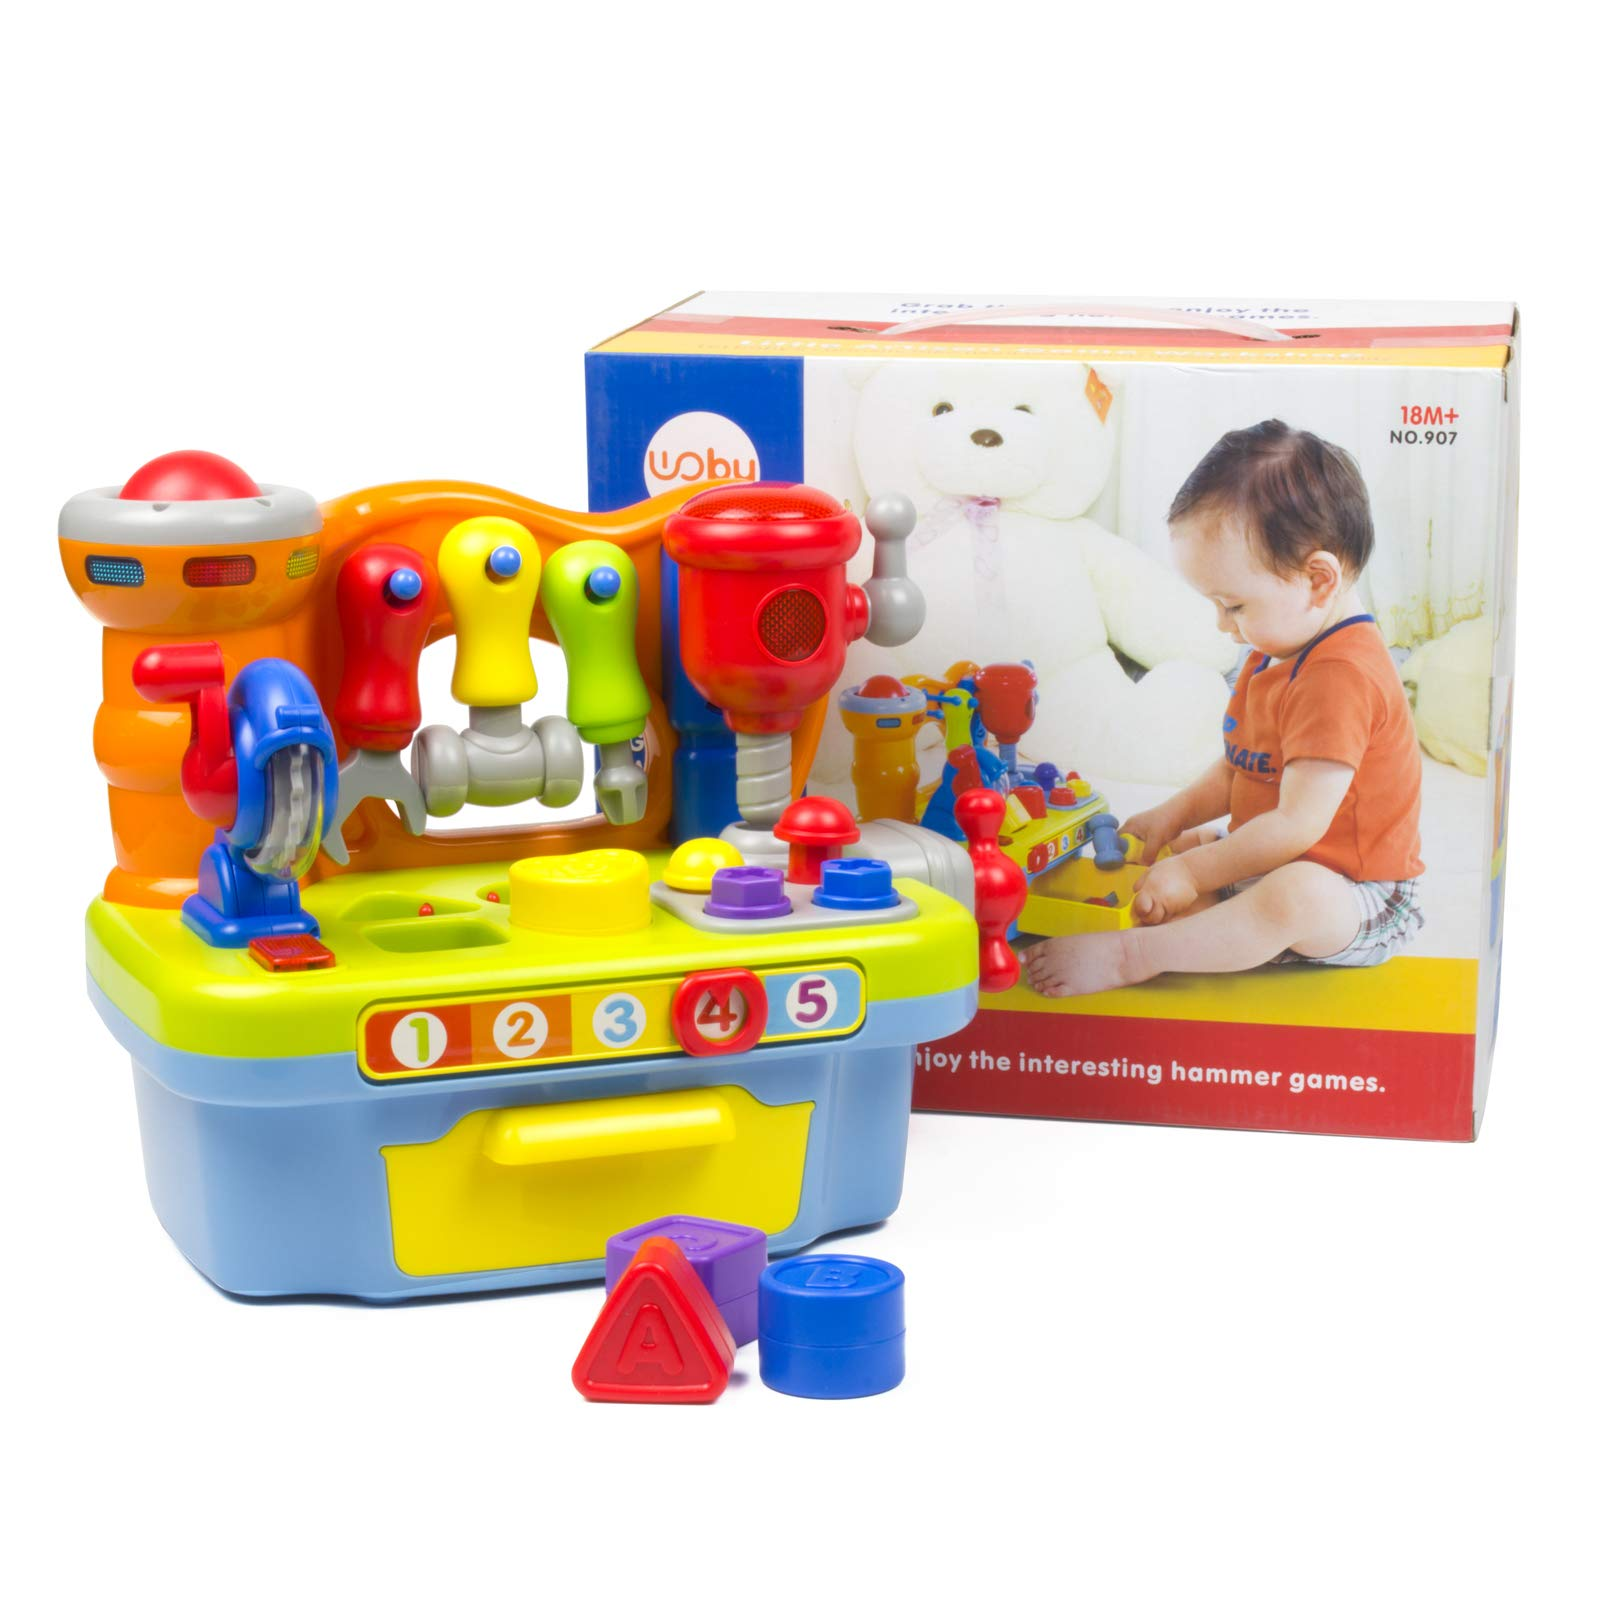 Woby Multifunctional Musical Learning Tool Workbench Toy Set for Kids with Shape Sorter Tools by Woby (Image #7)